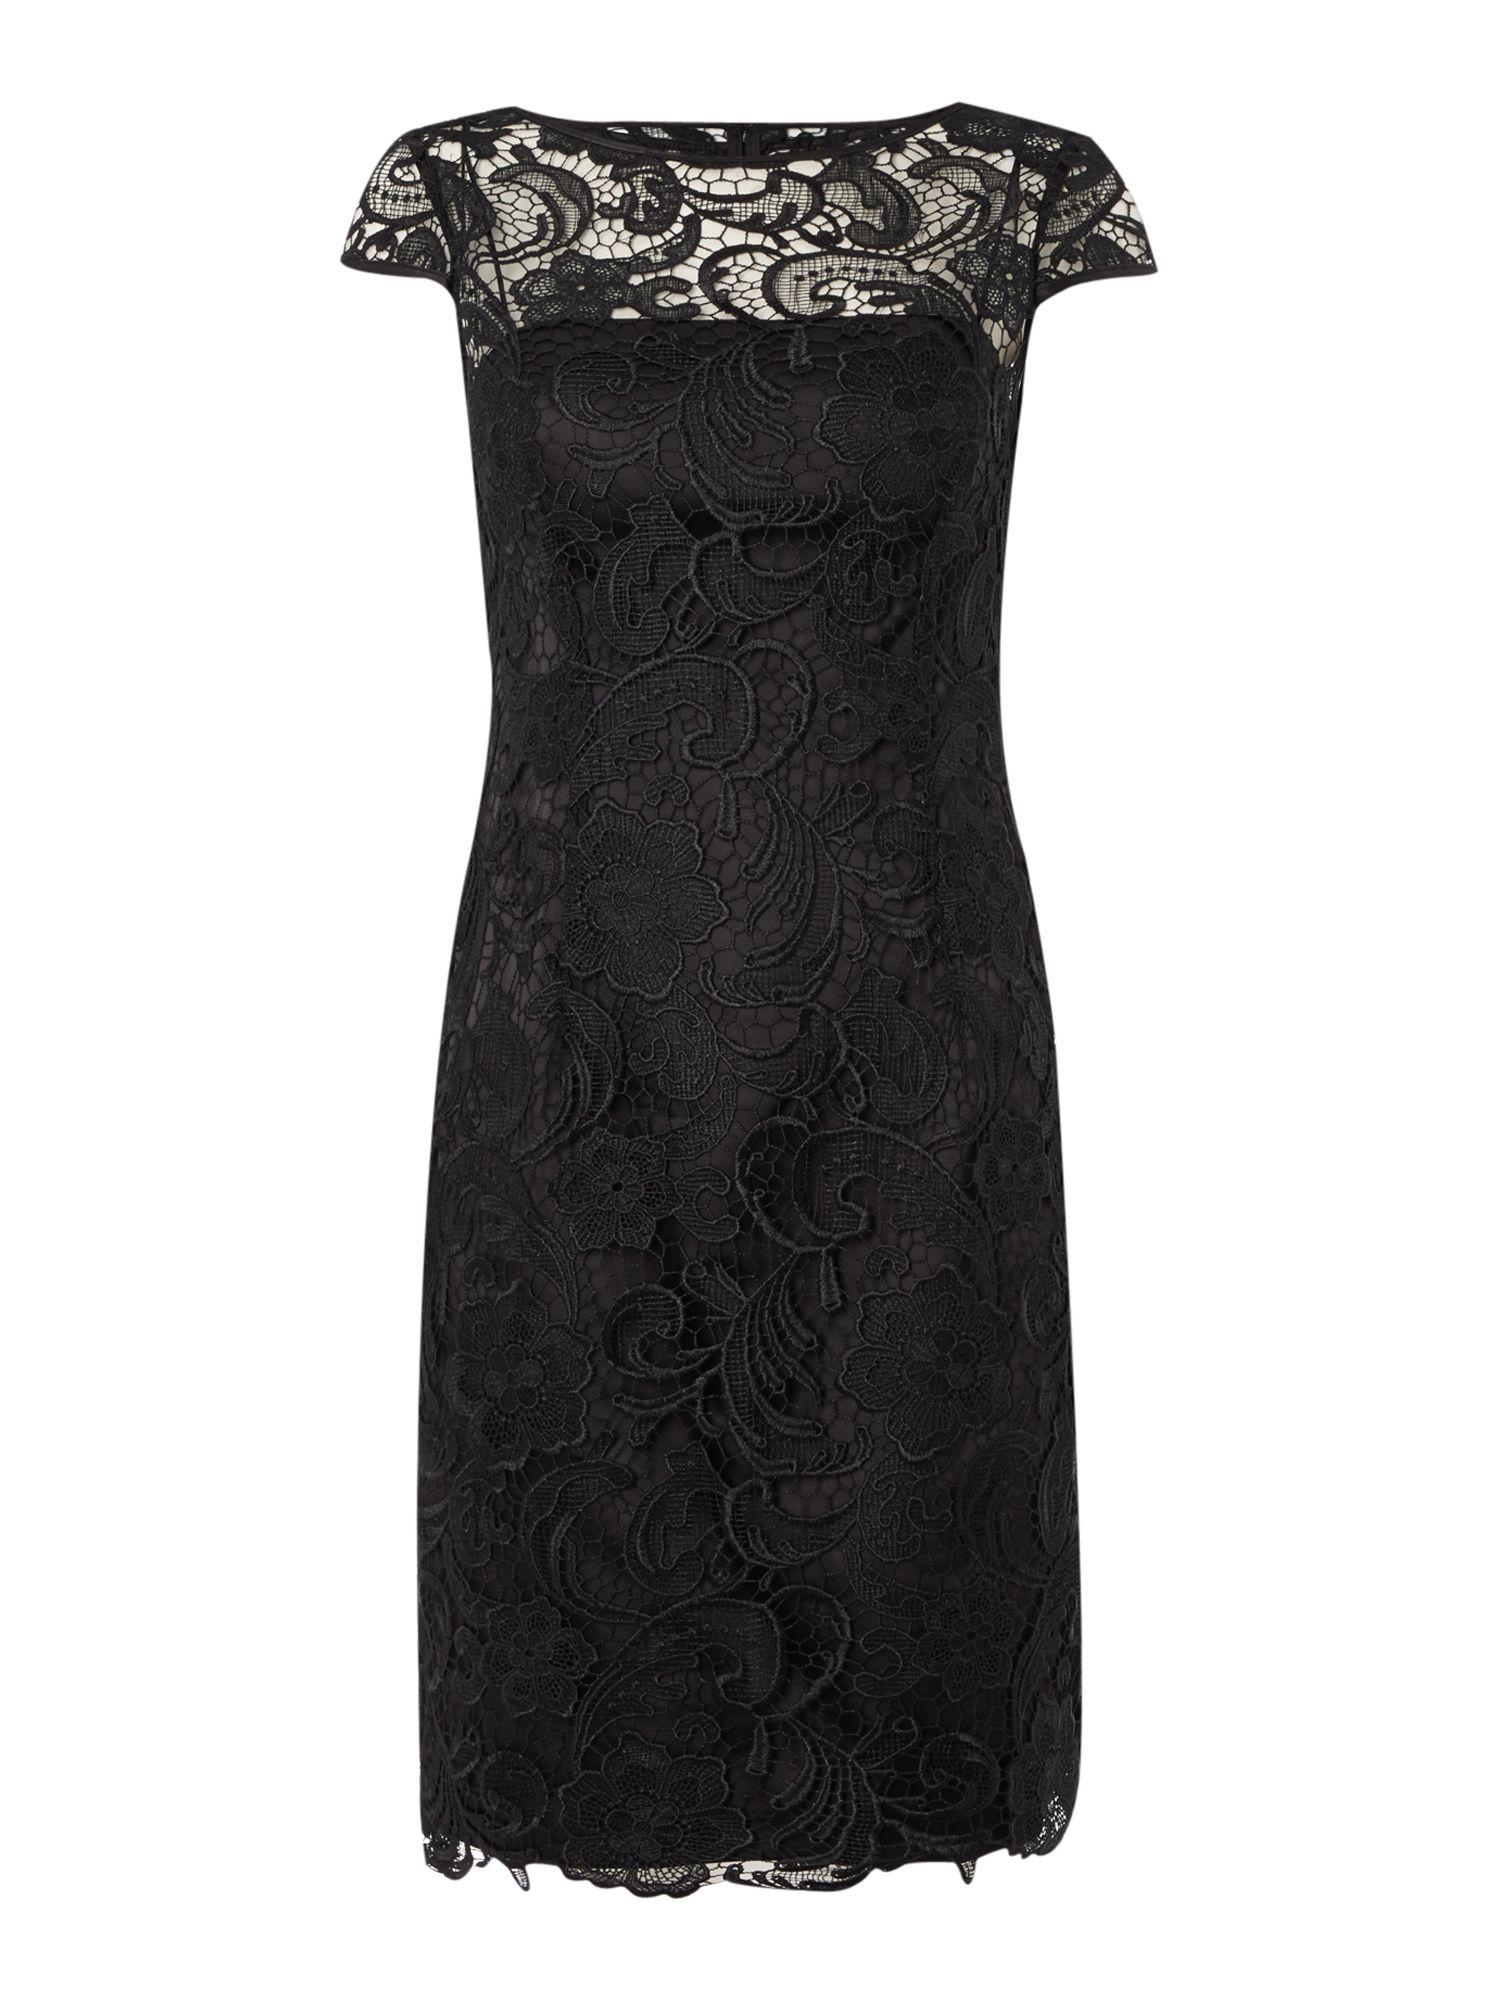 Adrianna Papell All over guipure lace dress Black